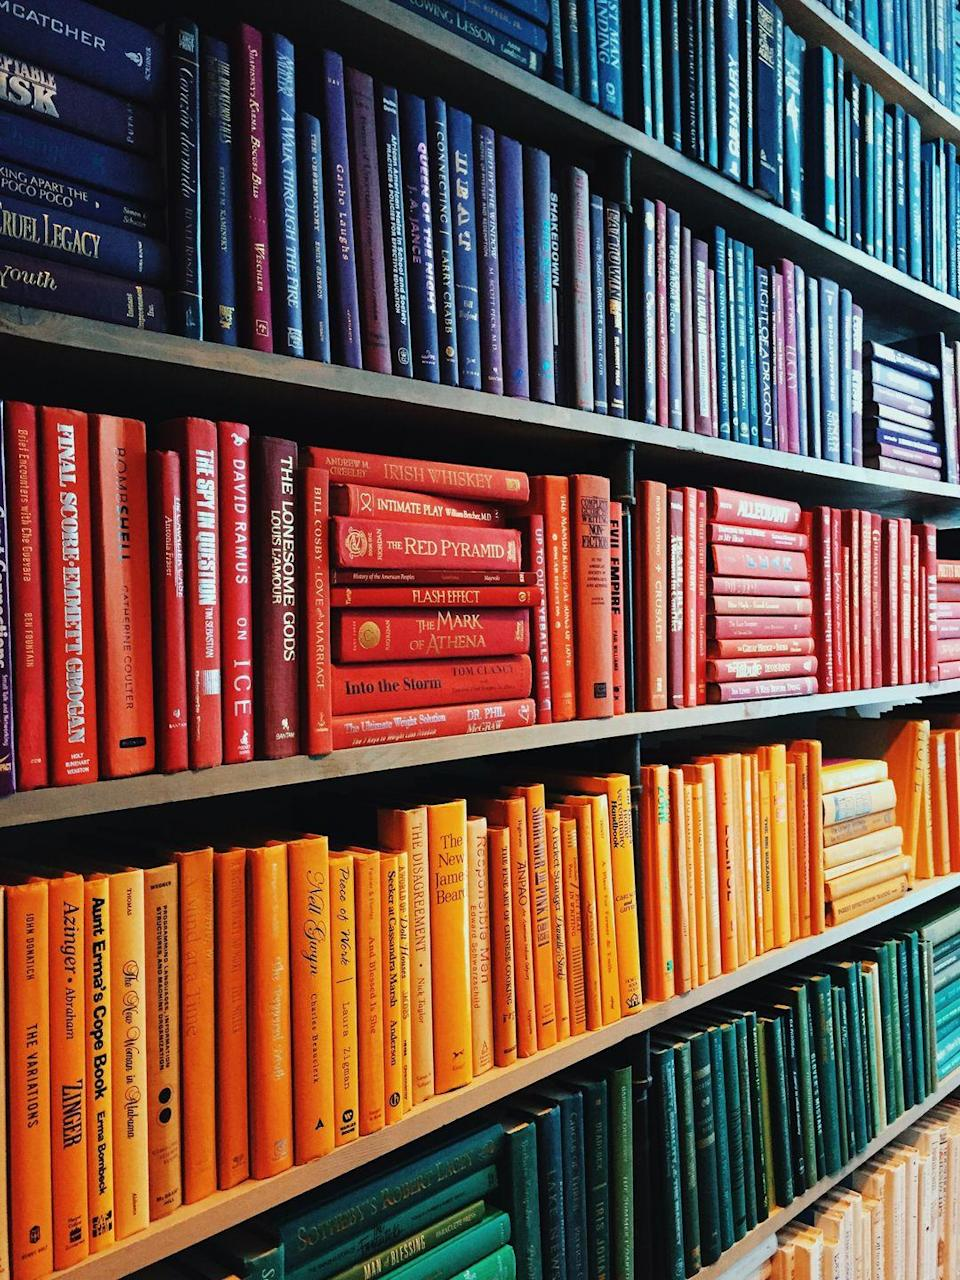 """<p>For some, their personal library is tucked away in a <a href=""""https://www.amazon.com/All-new-Kindle-Paperwhite-Waterproof-Storage/dp/B07CXG6C9W/?tag=syn-yahoo-20&ascsubtag=%5Bartid%7C10063.g.36459111%5Bsrc%7Cyahoo-us"""" rel=""""nofollow noopener"""" target=""""_blank"""" data-ylk=""""slk:Kindle"""" class=""""link rapid-noclick-resp"""">Kindle</a>. For others, it's scattered on shelves, nightstands, and floors throughout their home. Make your bookcases functional and pleasing to the eye by ordering books by height or color for a less cluttered, more cohesive look per organizing expert <a href=""""http://www.jeffreyphillip.com/"""" rel=""""nofollow noopener"""" target=""""_blank"""" data-ylk=""""slk:Jeffrey Phillip's"""" class=""""link rapid-noclick-resp"""">Jeffrey Phillip's </a>recommendation. </p>"""